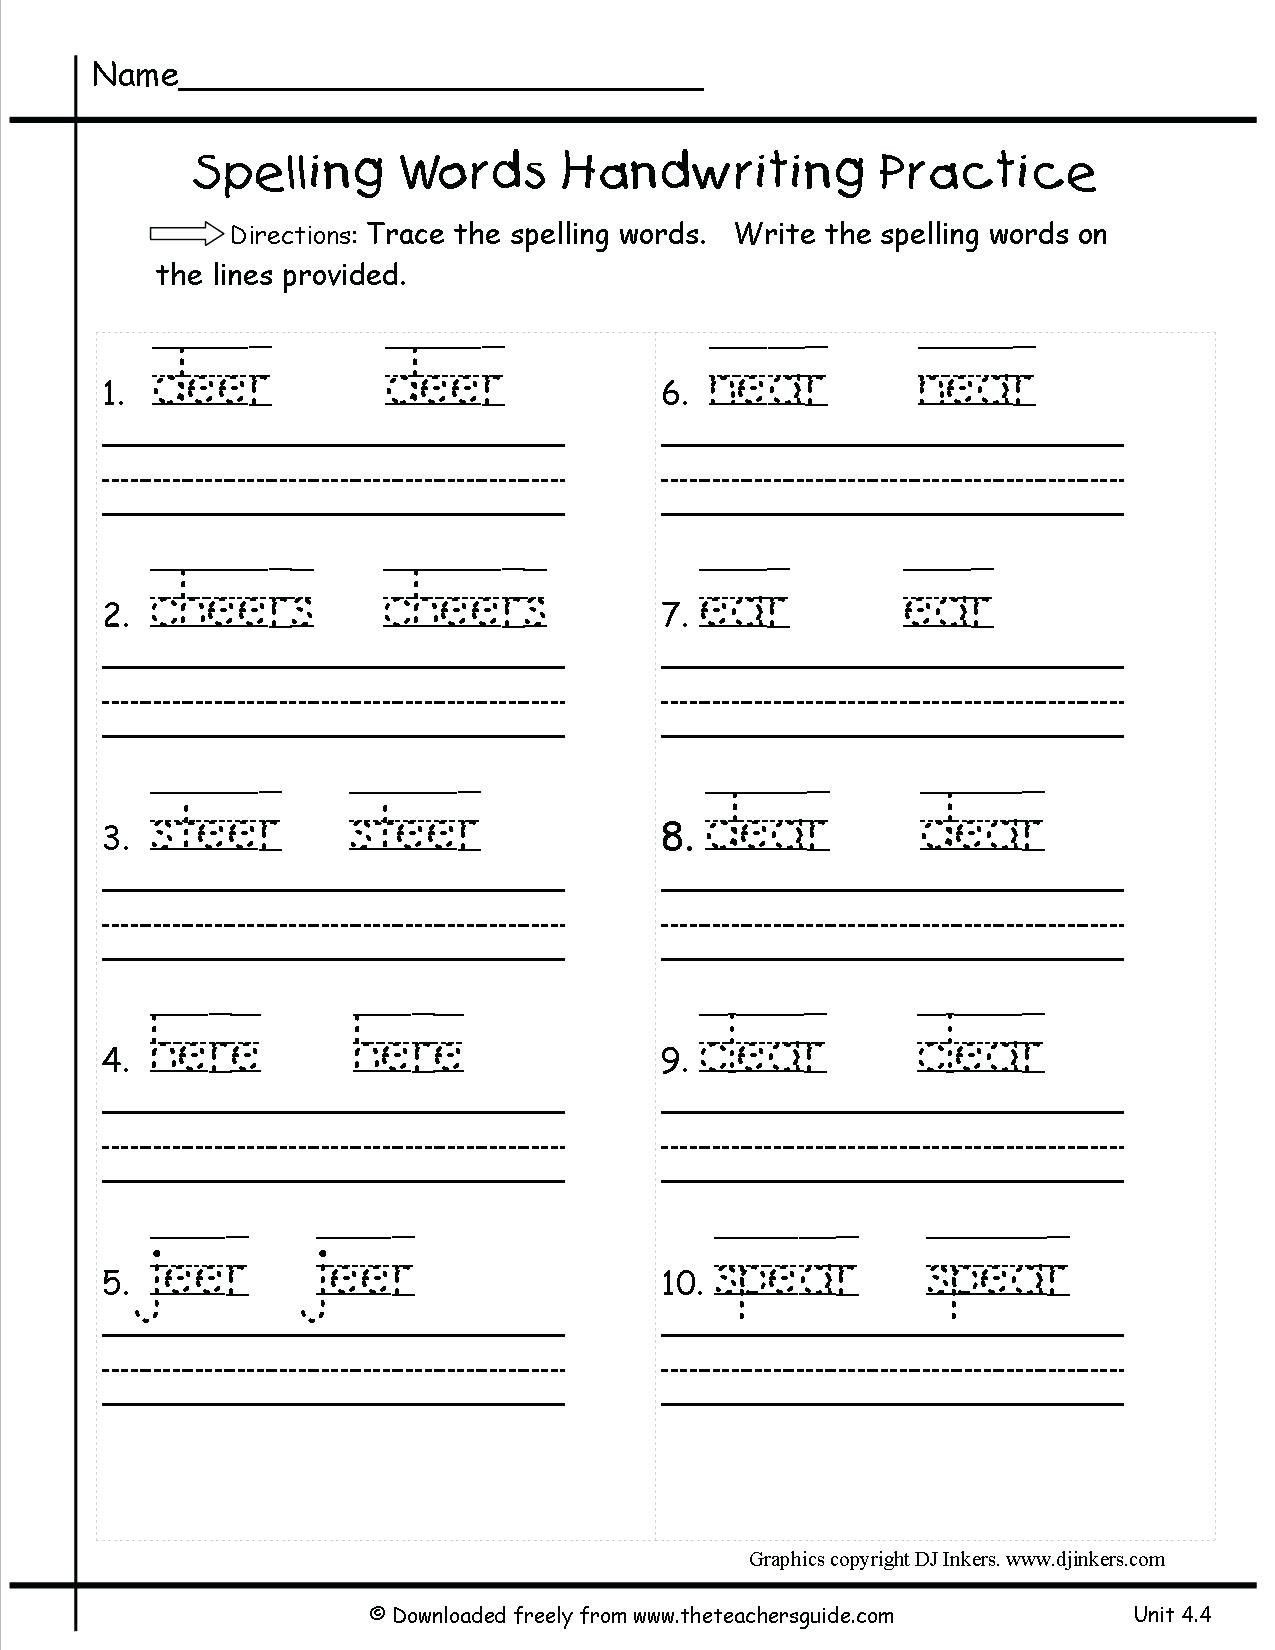 Worksheets for First Grade Writing Creative Writing Grade 1 First Grade Writing Prompts